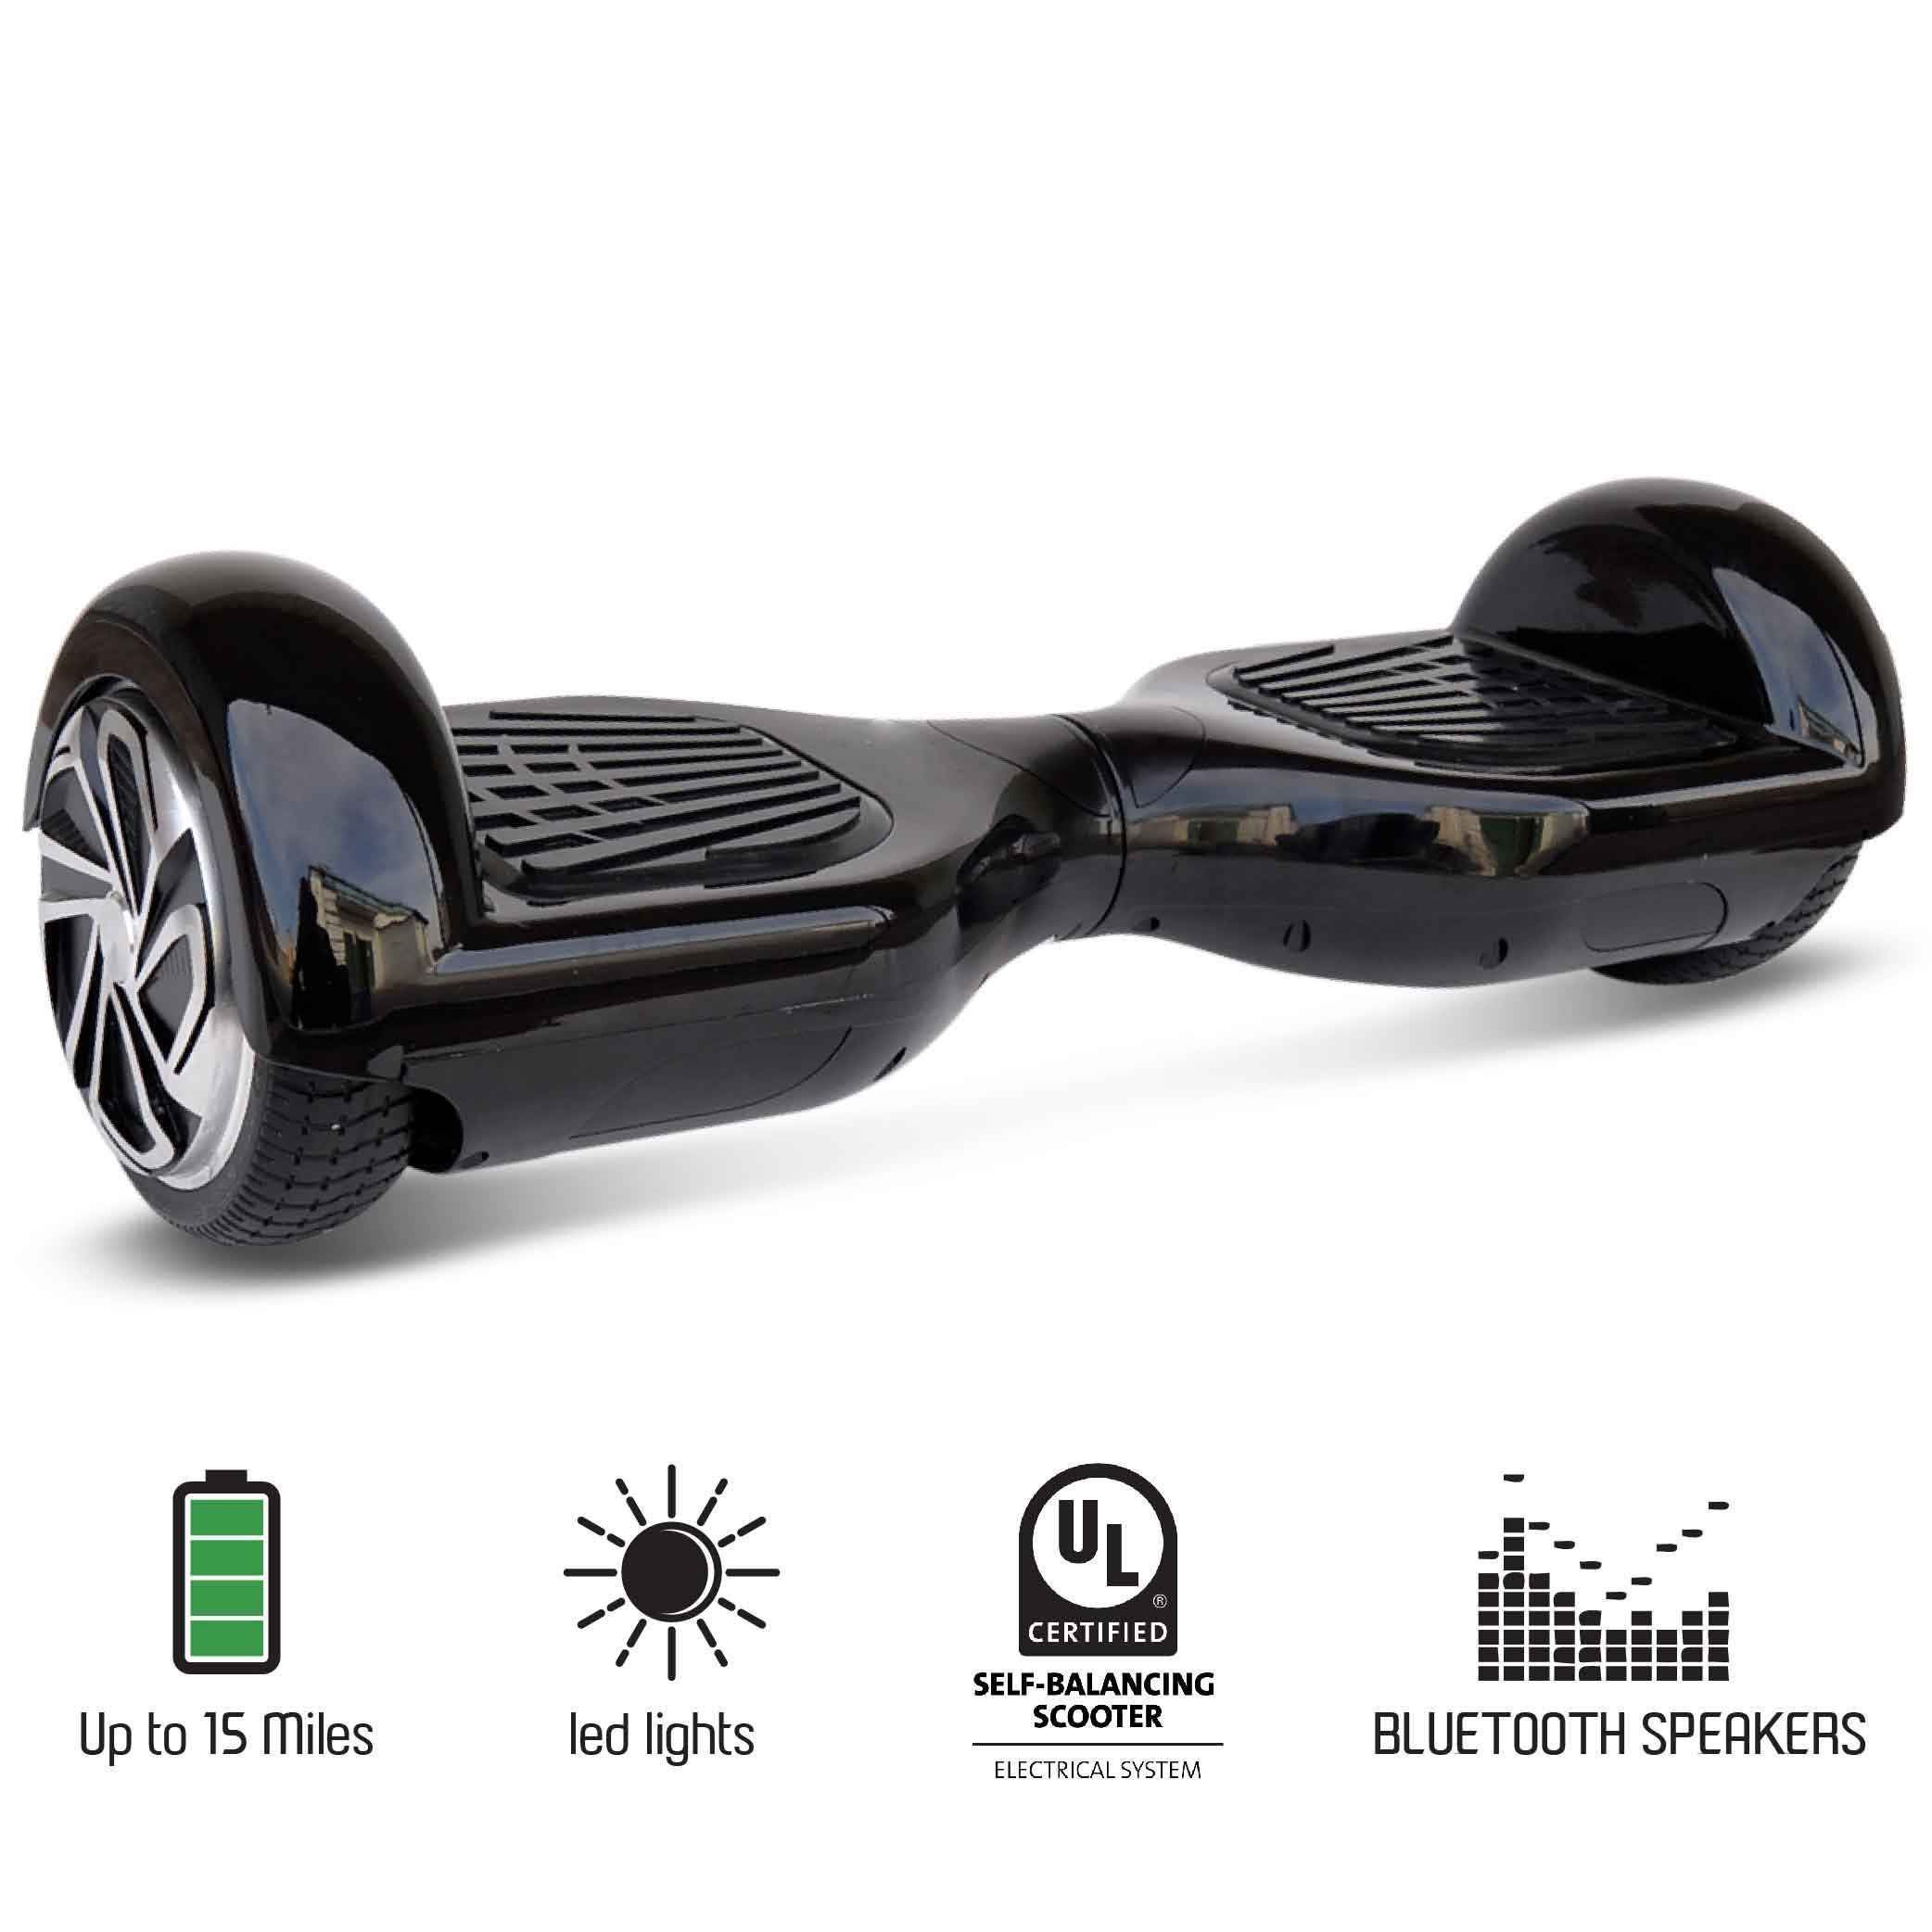 NHT 6.5'' Wheel Hoverboard Electric Smart Self Balancing Scooter with Bluetooth Speaker - UL2272 Certified, Black